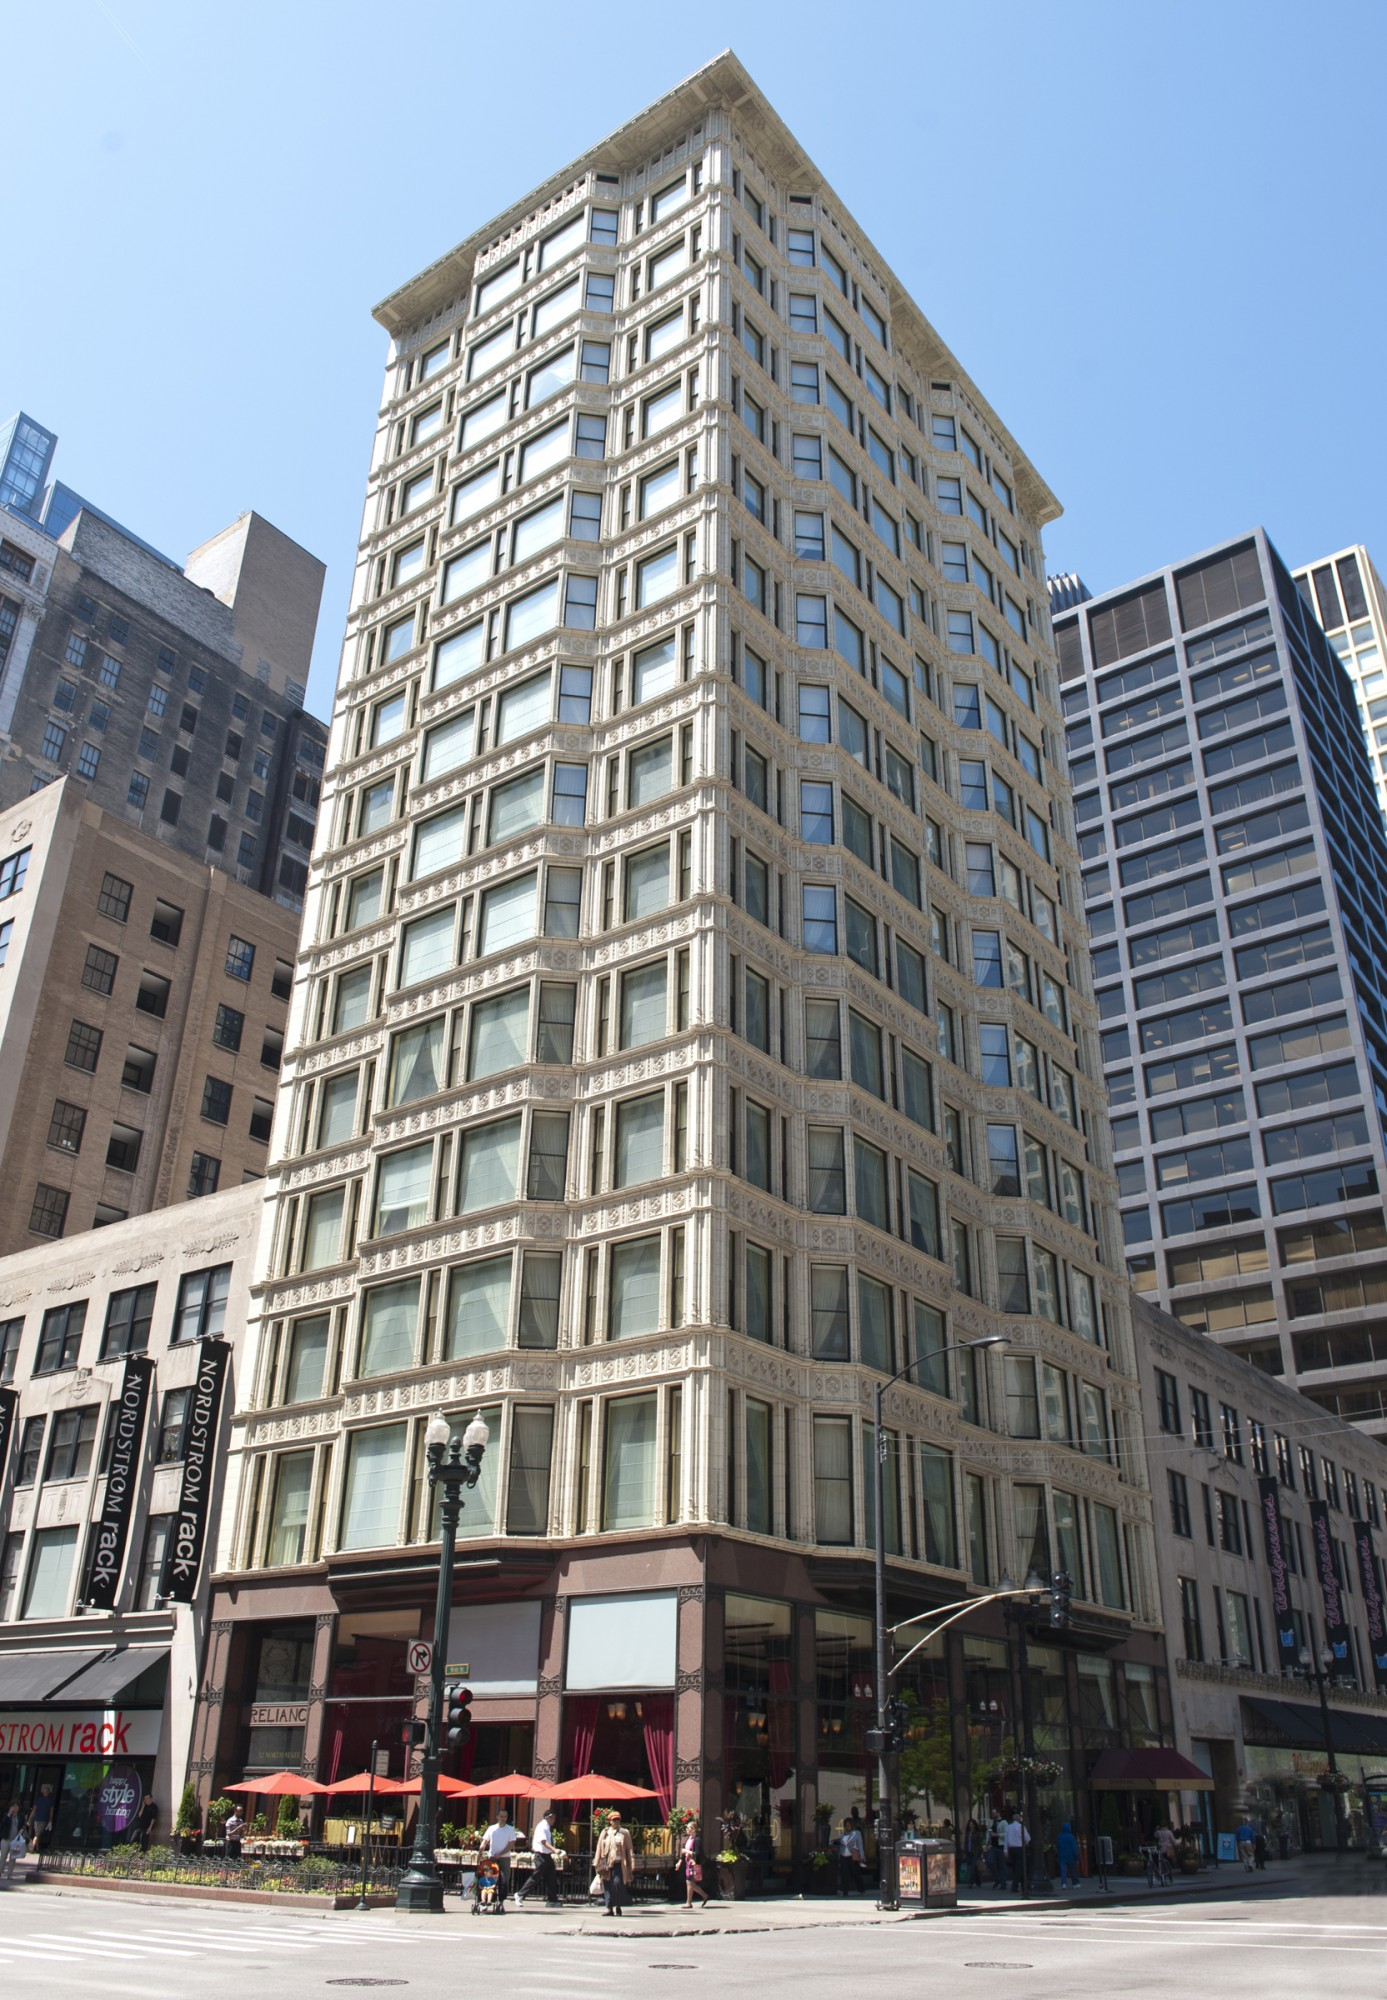 The Reliance Building was completed in 1895 by the Burnham and Root architectural firm.